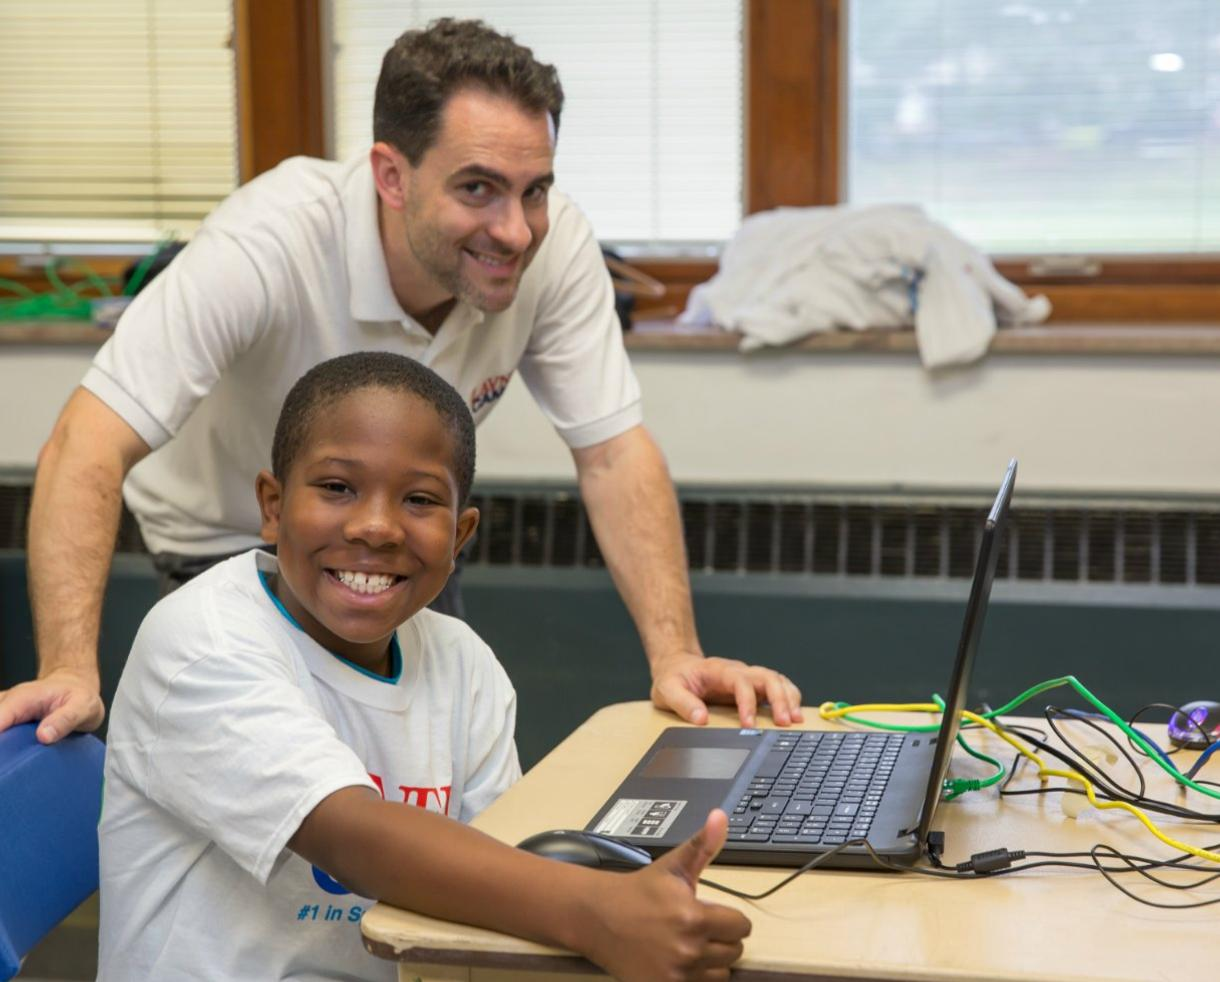 $589 for Camp Tech R3volution® Summer Camp for Ages 7-14 at UCLA – 35+Majors/Minors in Robotics with AI, Next Generation Minecraft™, Python, Java, Game Design, VR, Spy Tech, Digital Music Making, Digital Movie Making for YouTube® & More! ($59 Off)